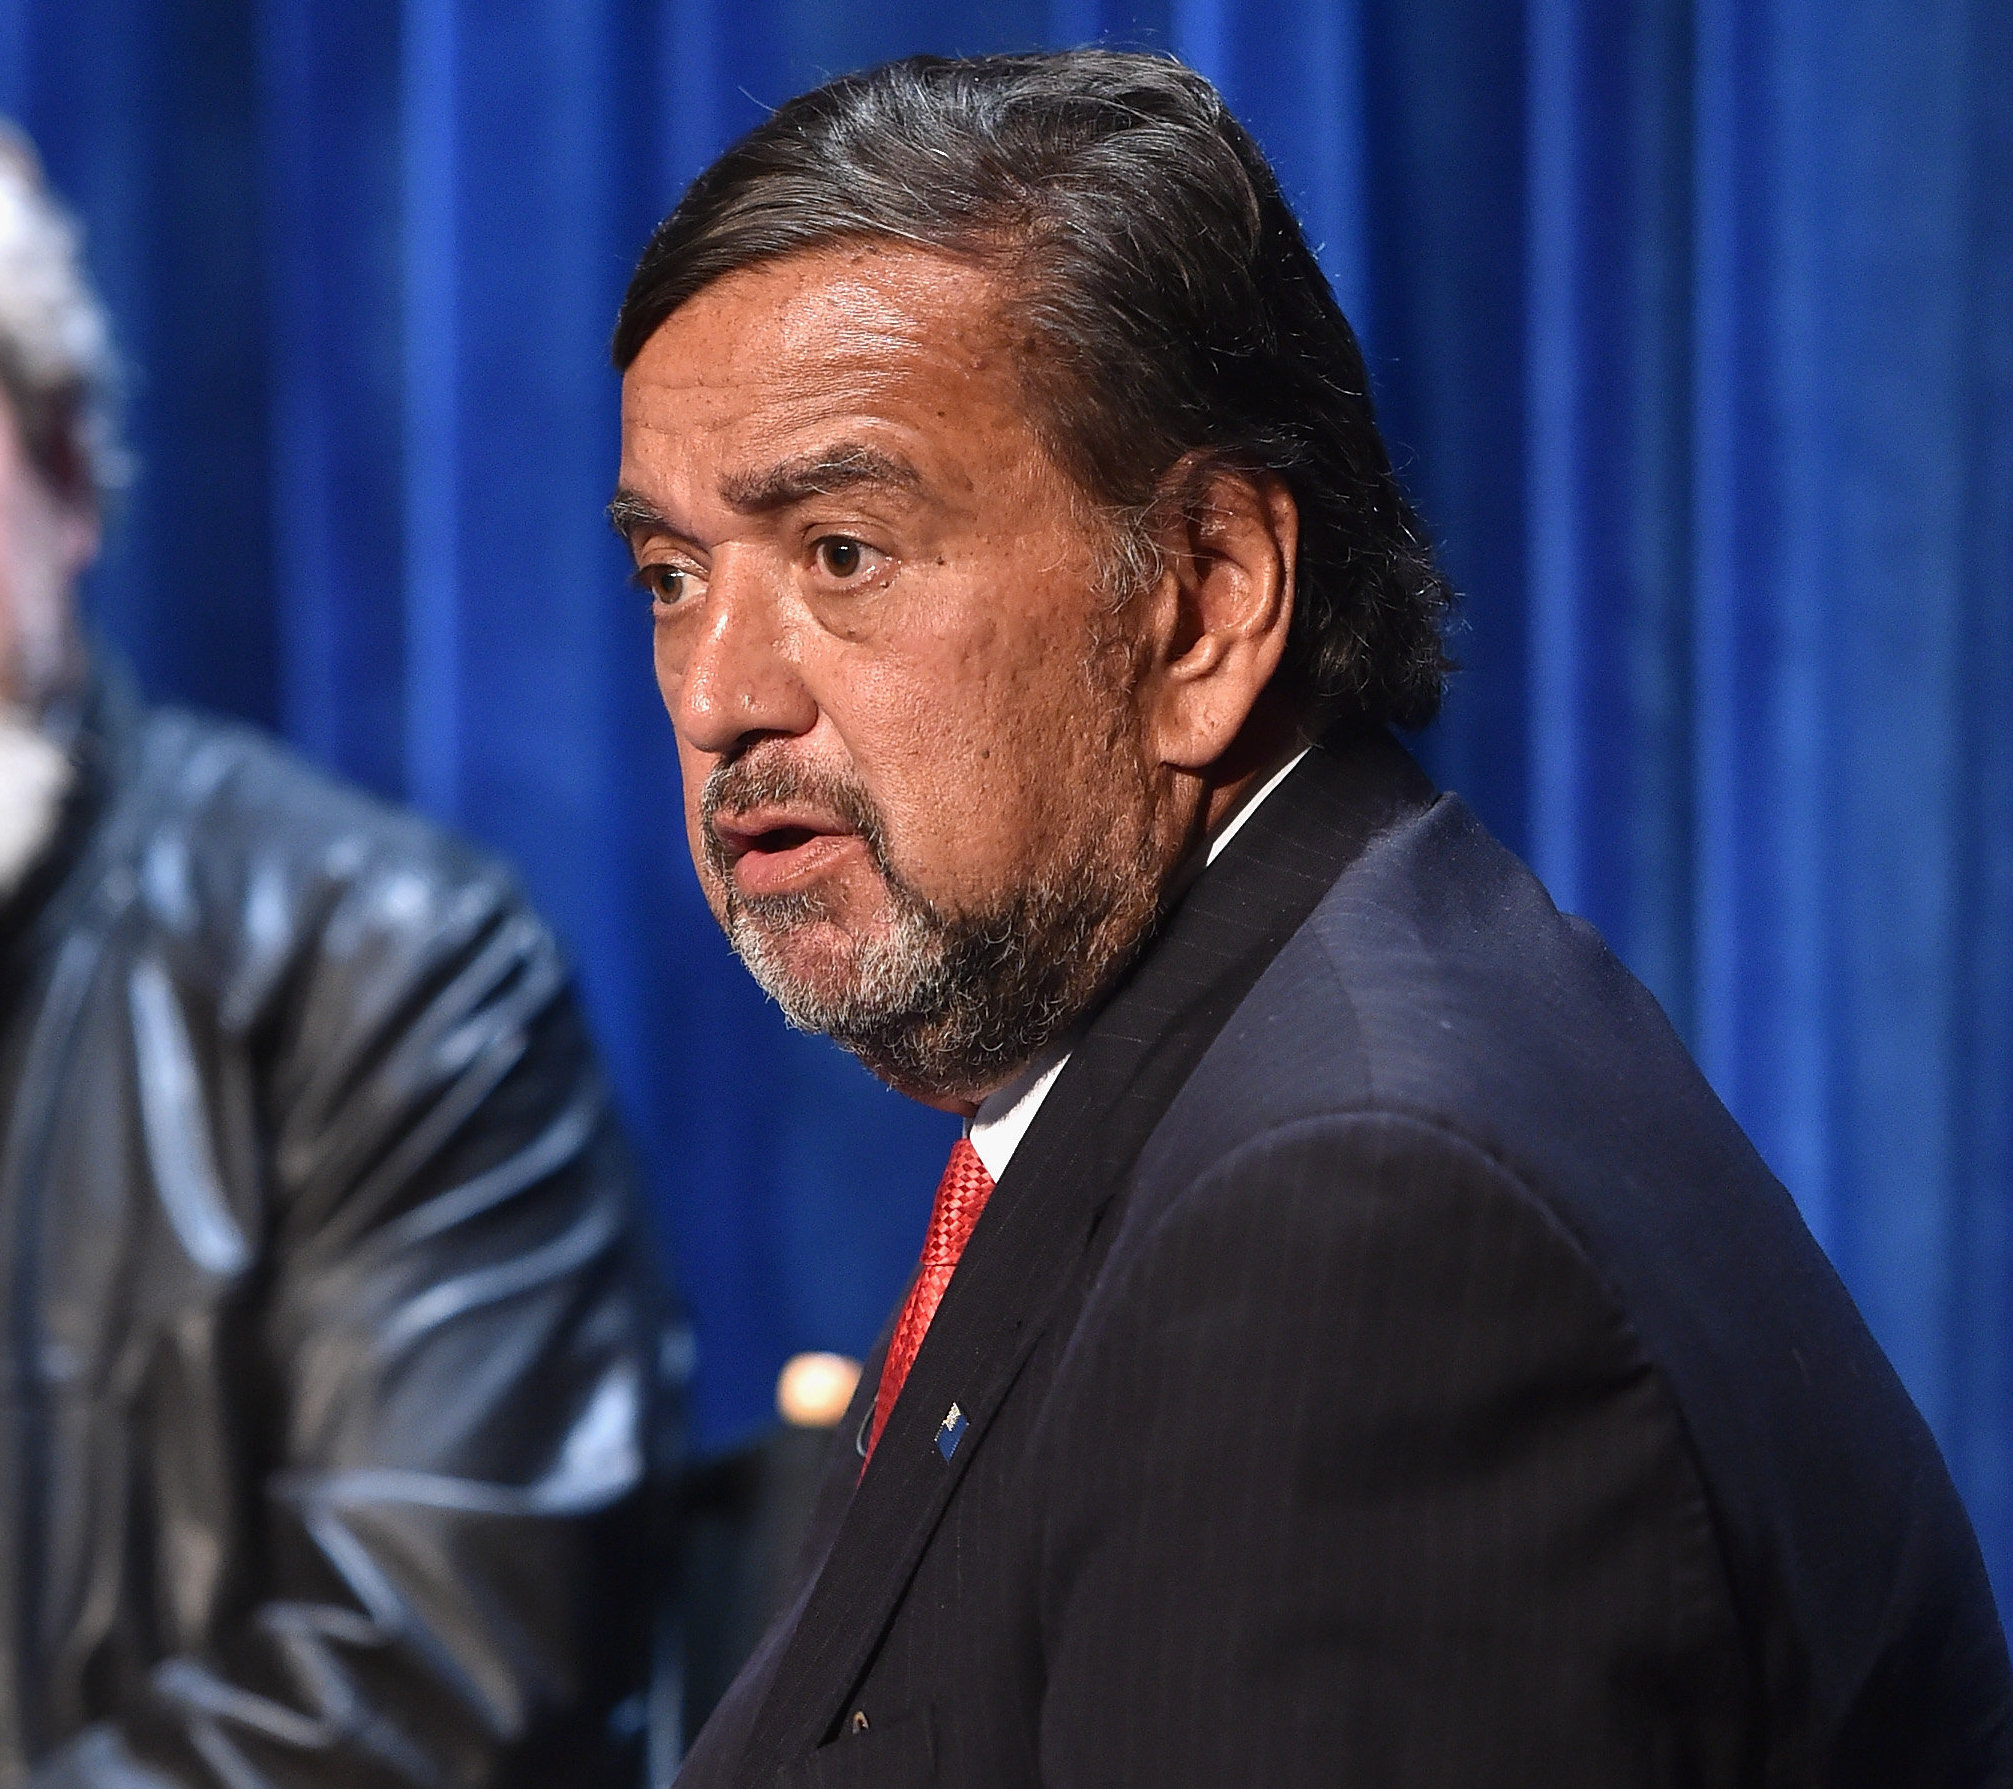 Former New Mexico Governor Bill Richardson quit the international board on the Rohingya crisis